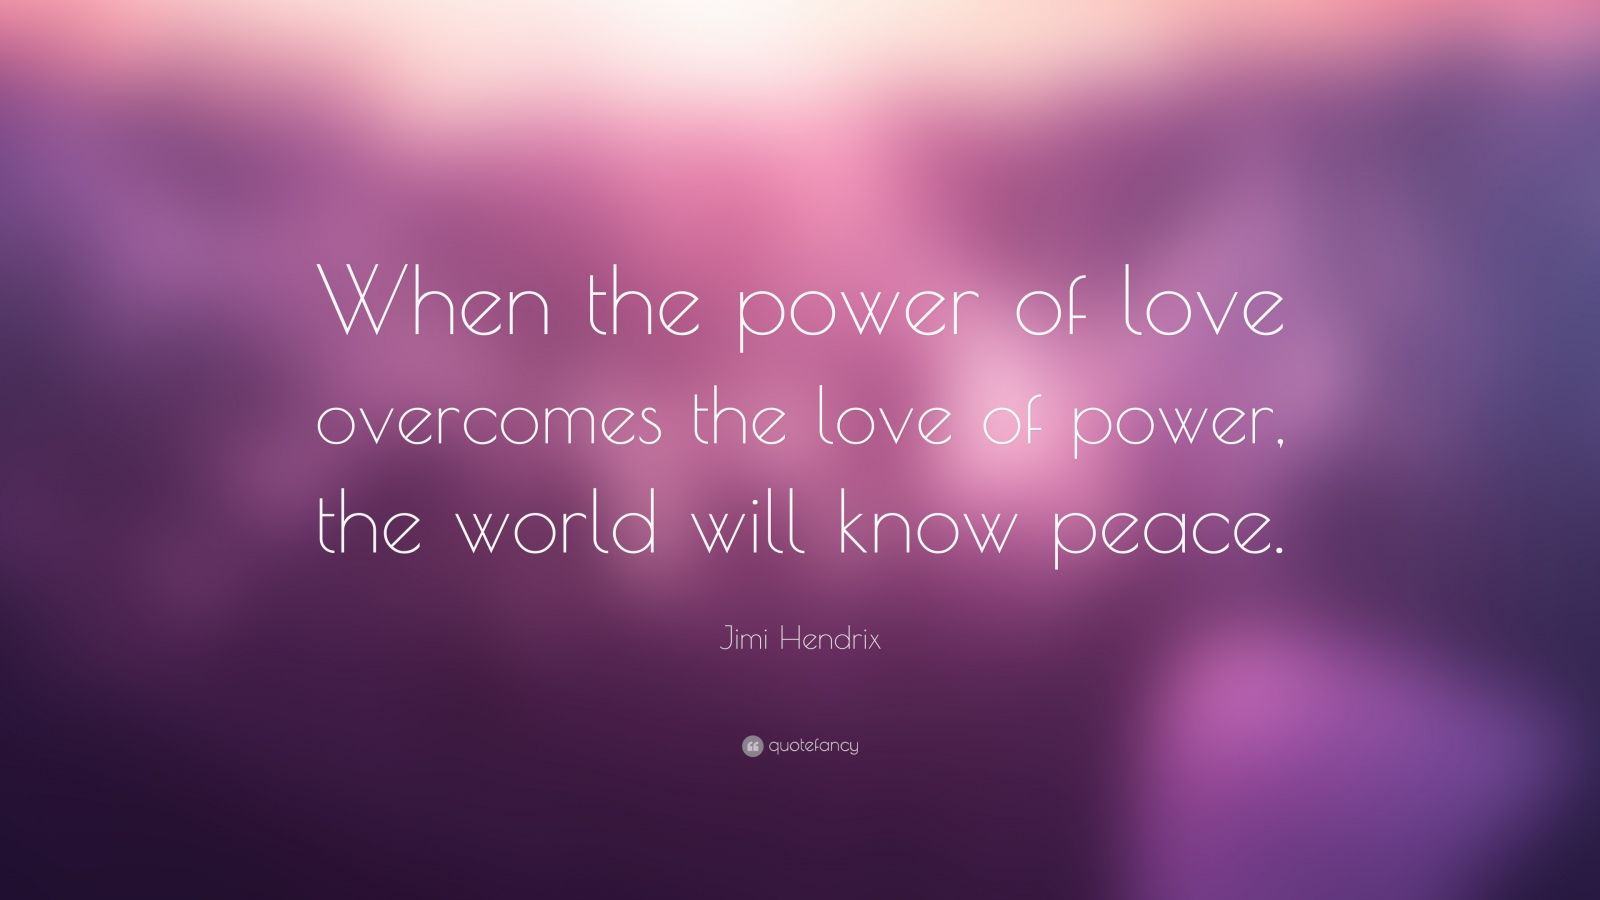 Love Power Quotes When The Power Of Love Overcomes The Love Of Power Quote Picture